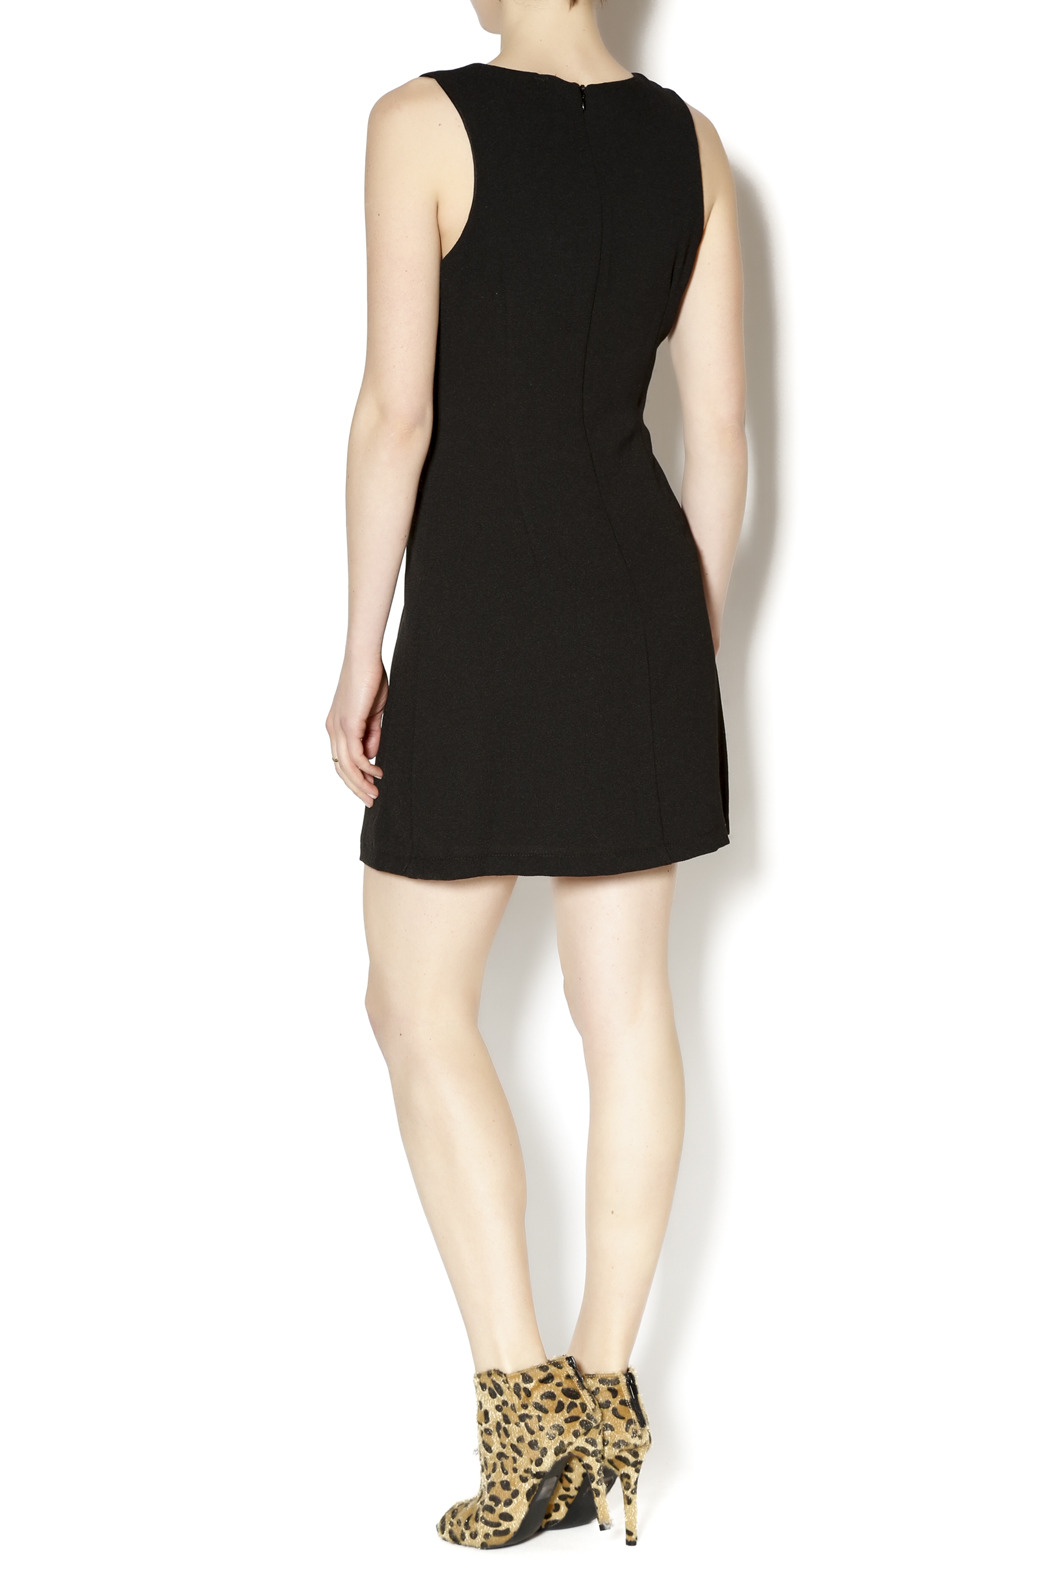 Gina Louise Little Black Dress - Side Cropped Image